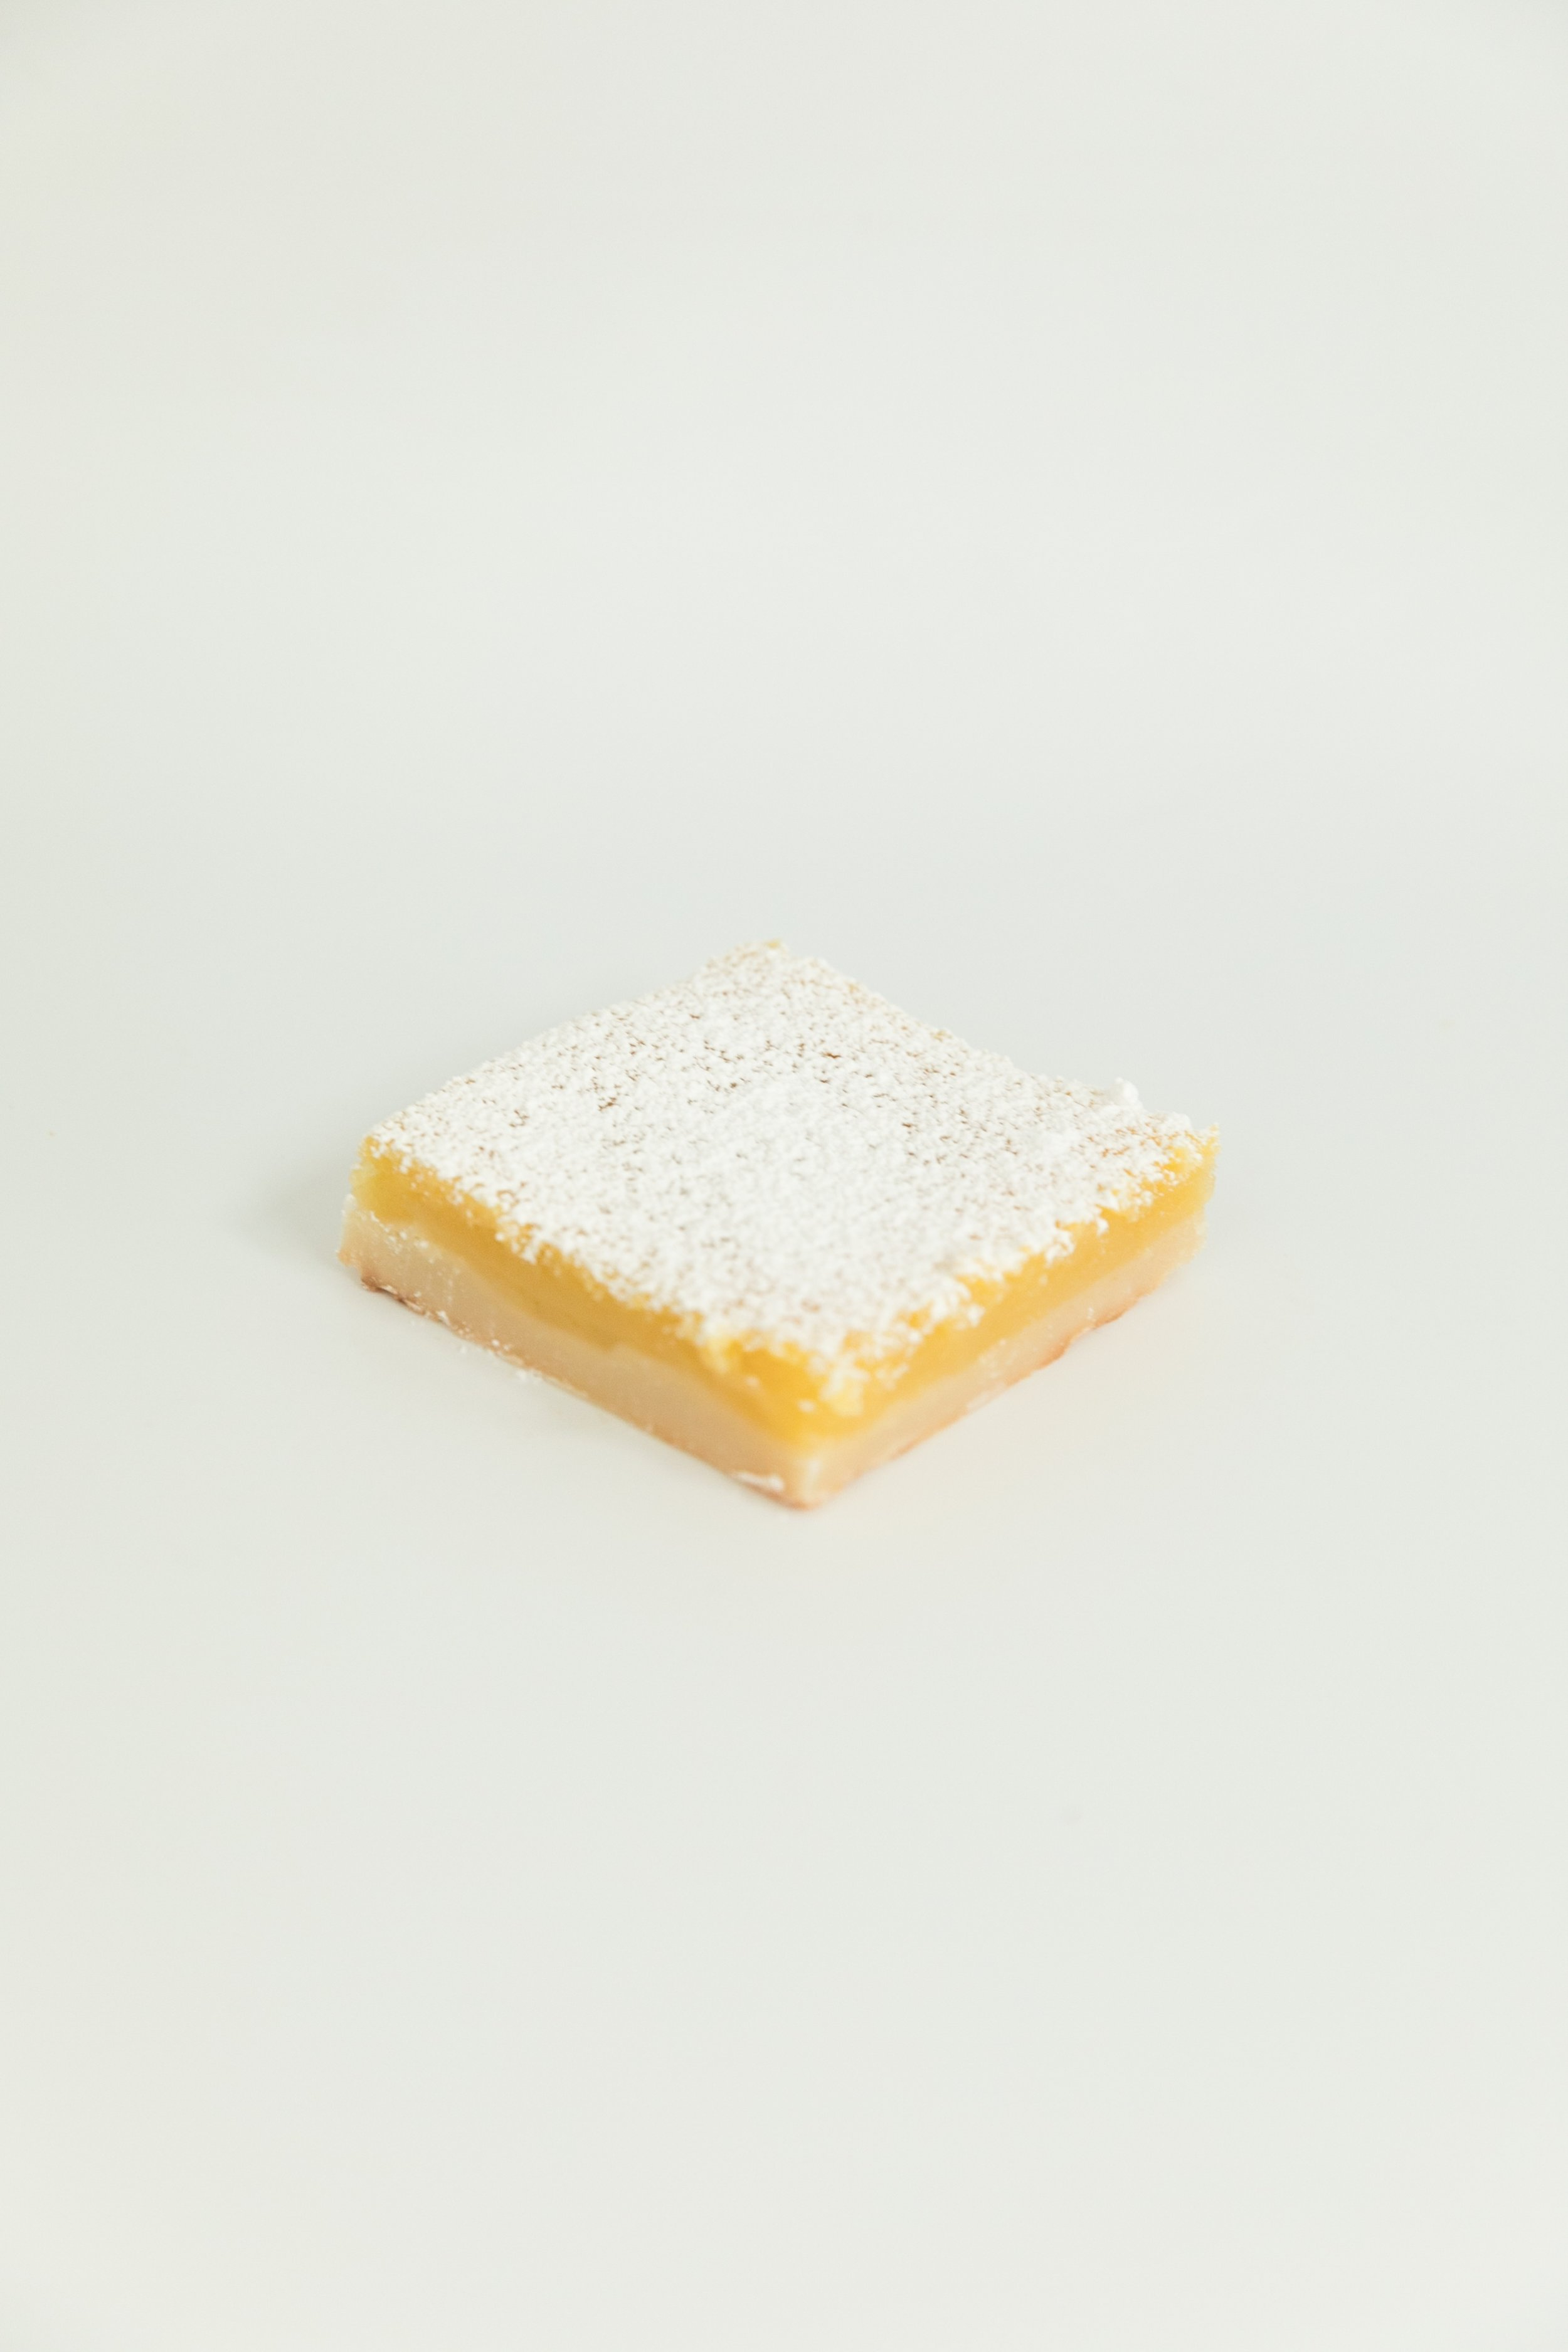 lemon bar topped with a powdered sugar sprinkle